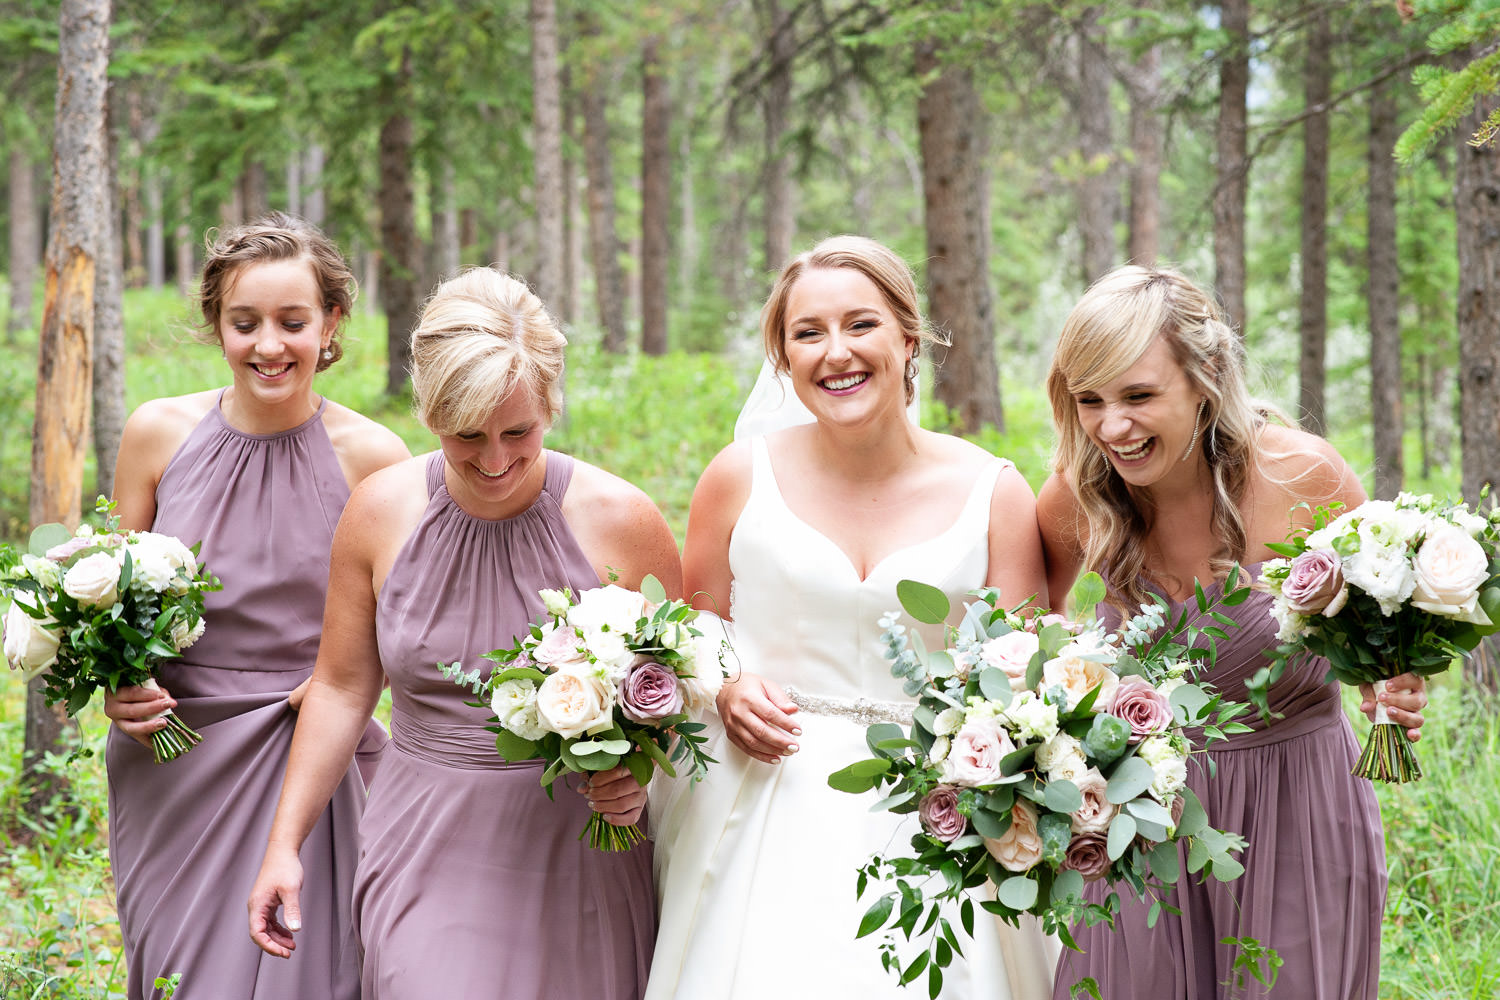 Bride with her bridesmaids after a Creekside Villa wedding captured by Tara Whittaker Photography